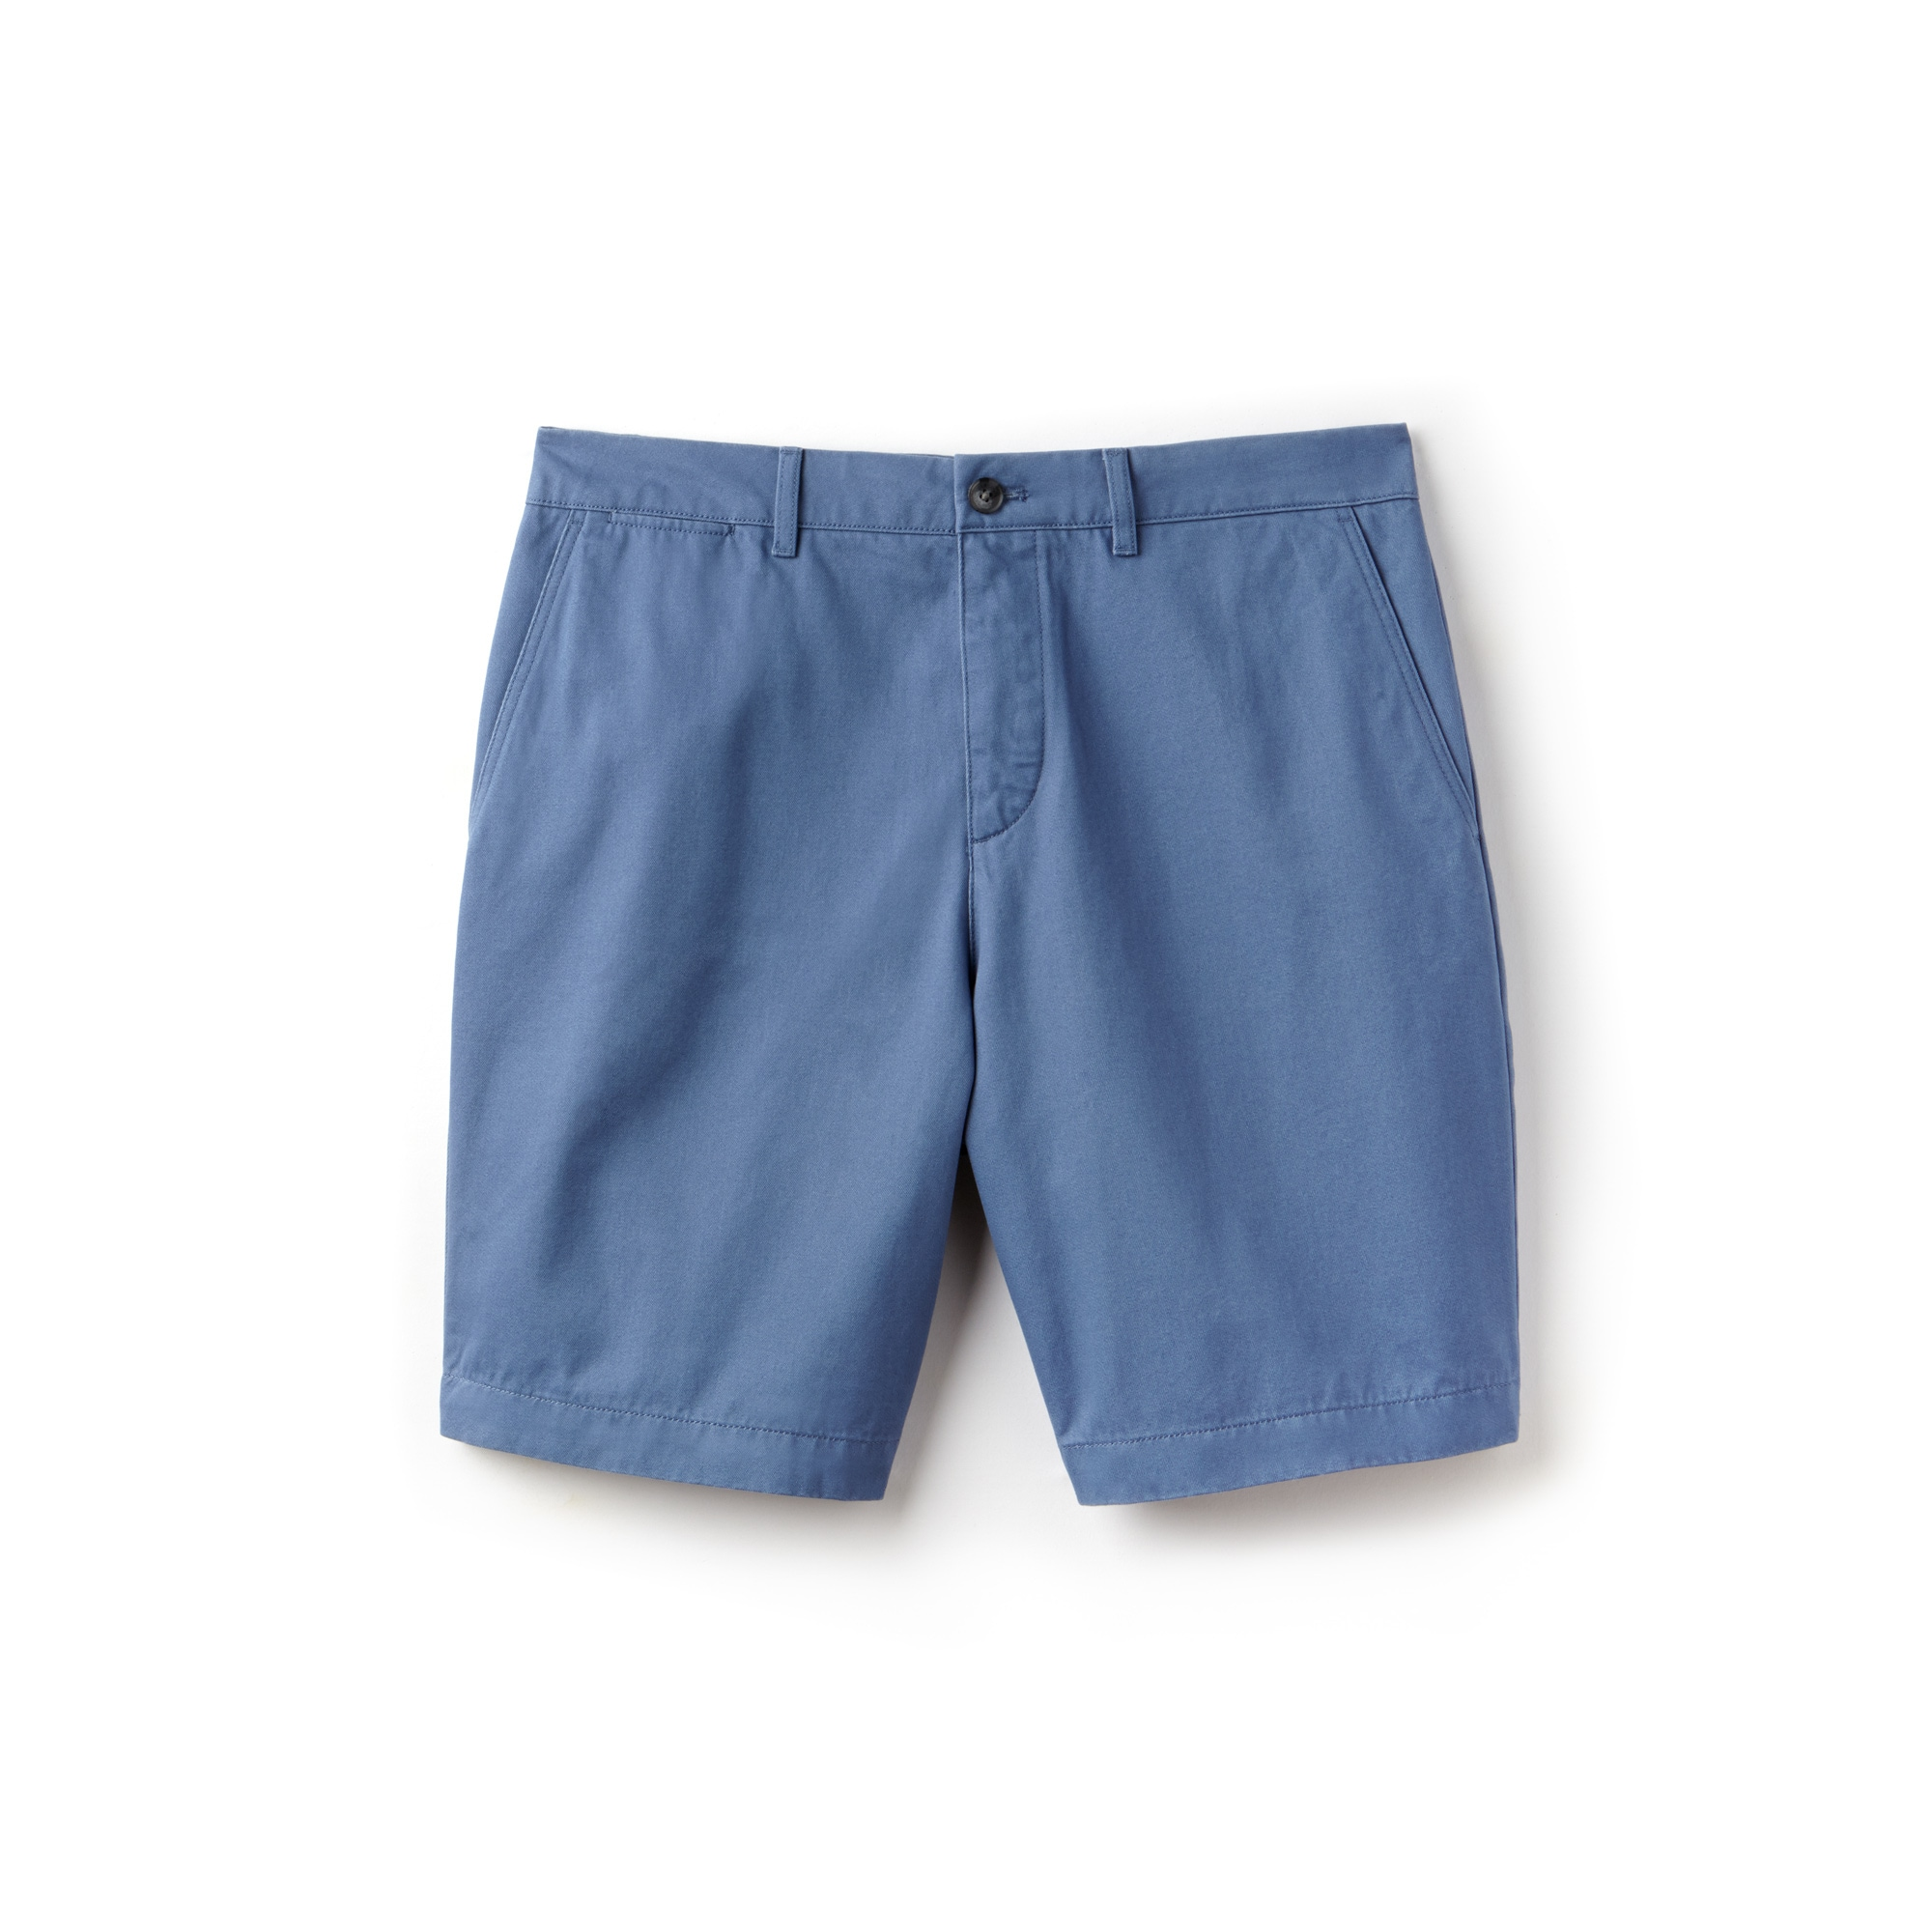 Men's Regular Fit Cotton Gabardine Bermuda Shorts